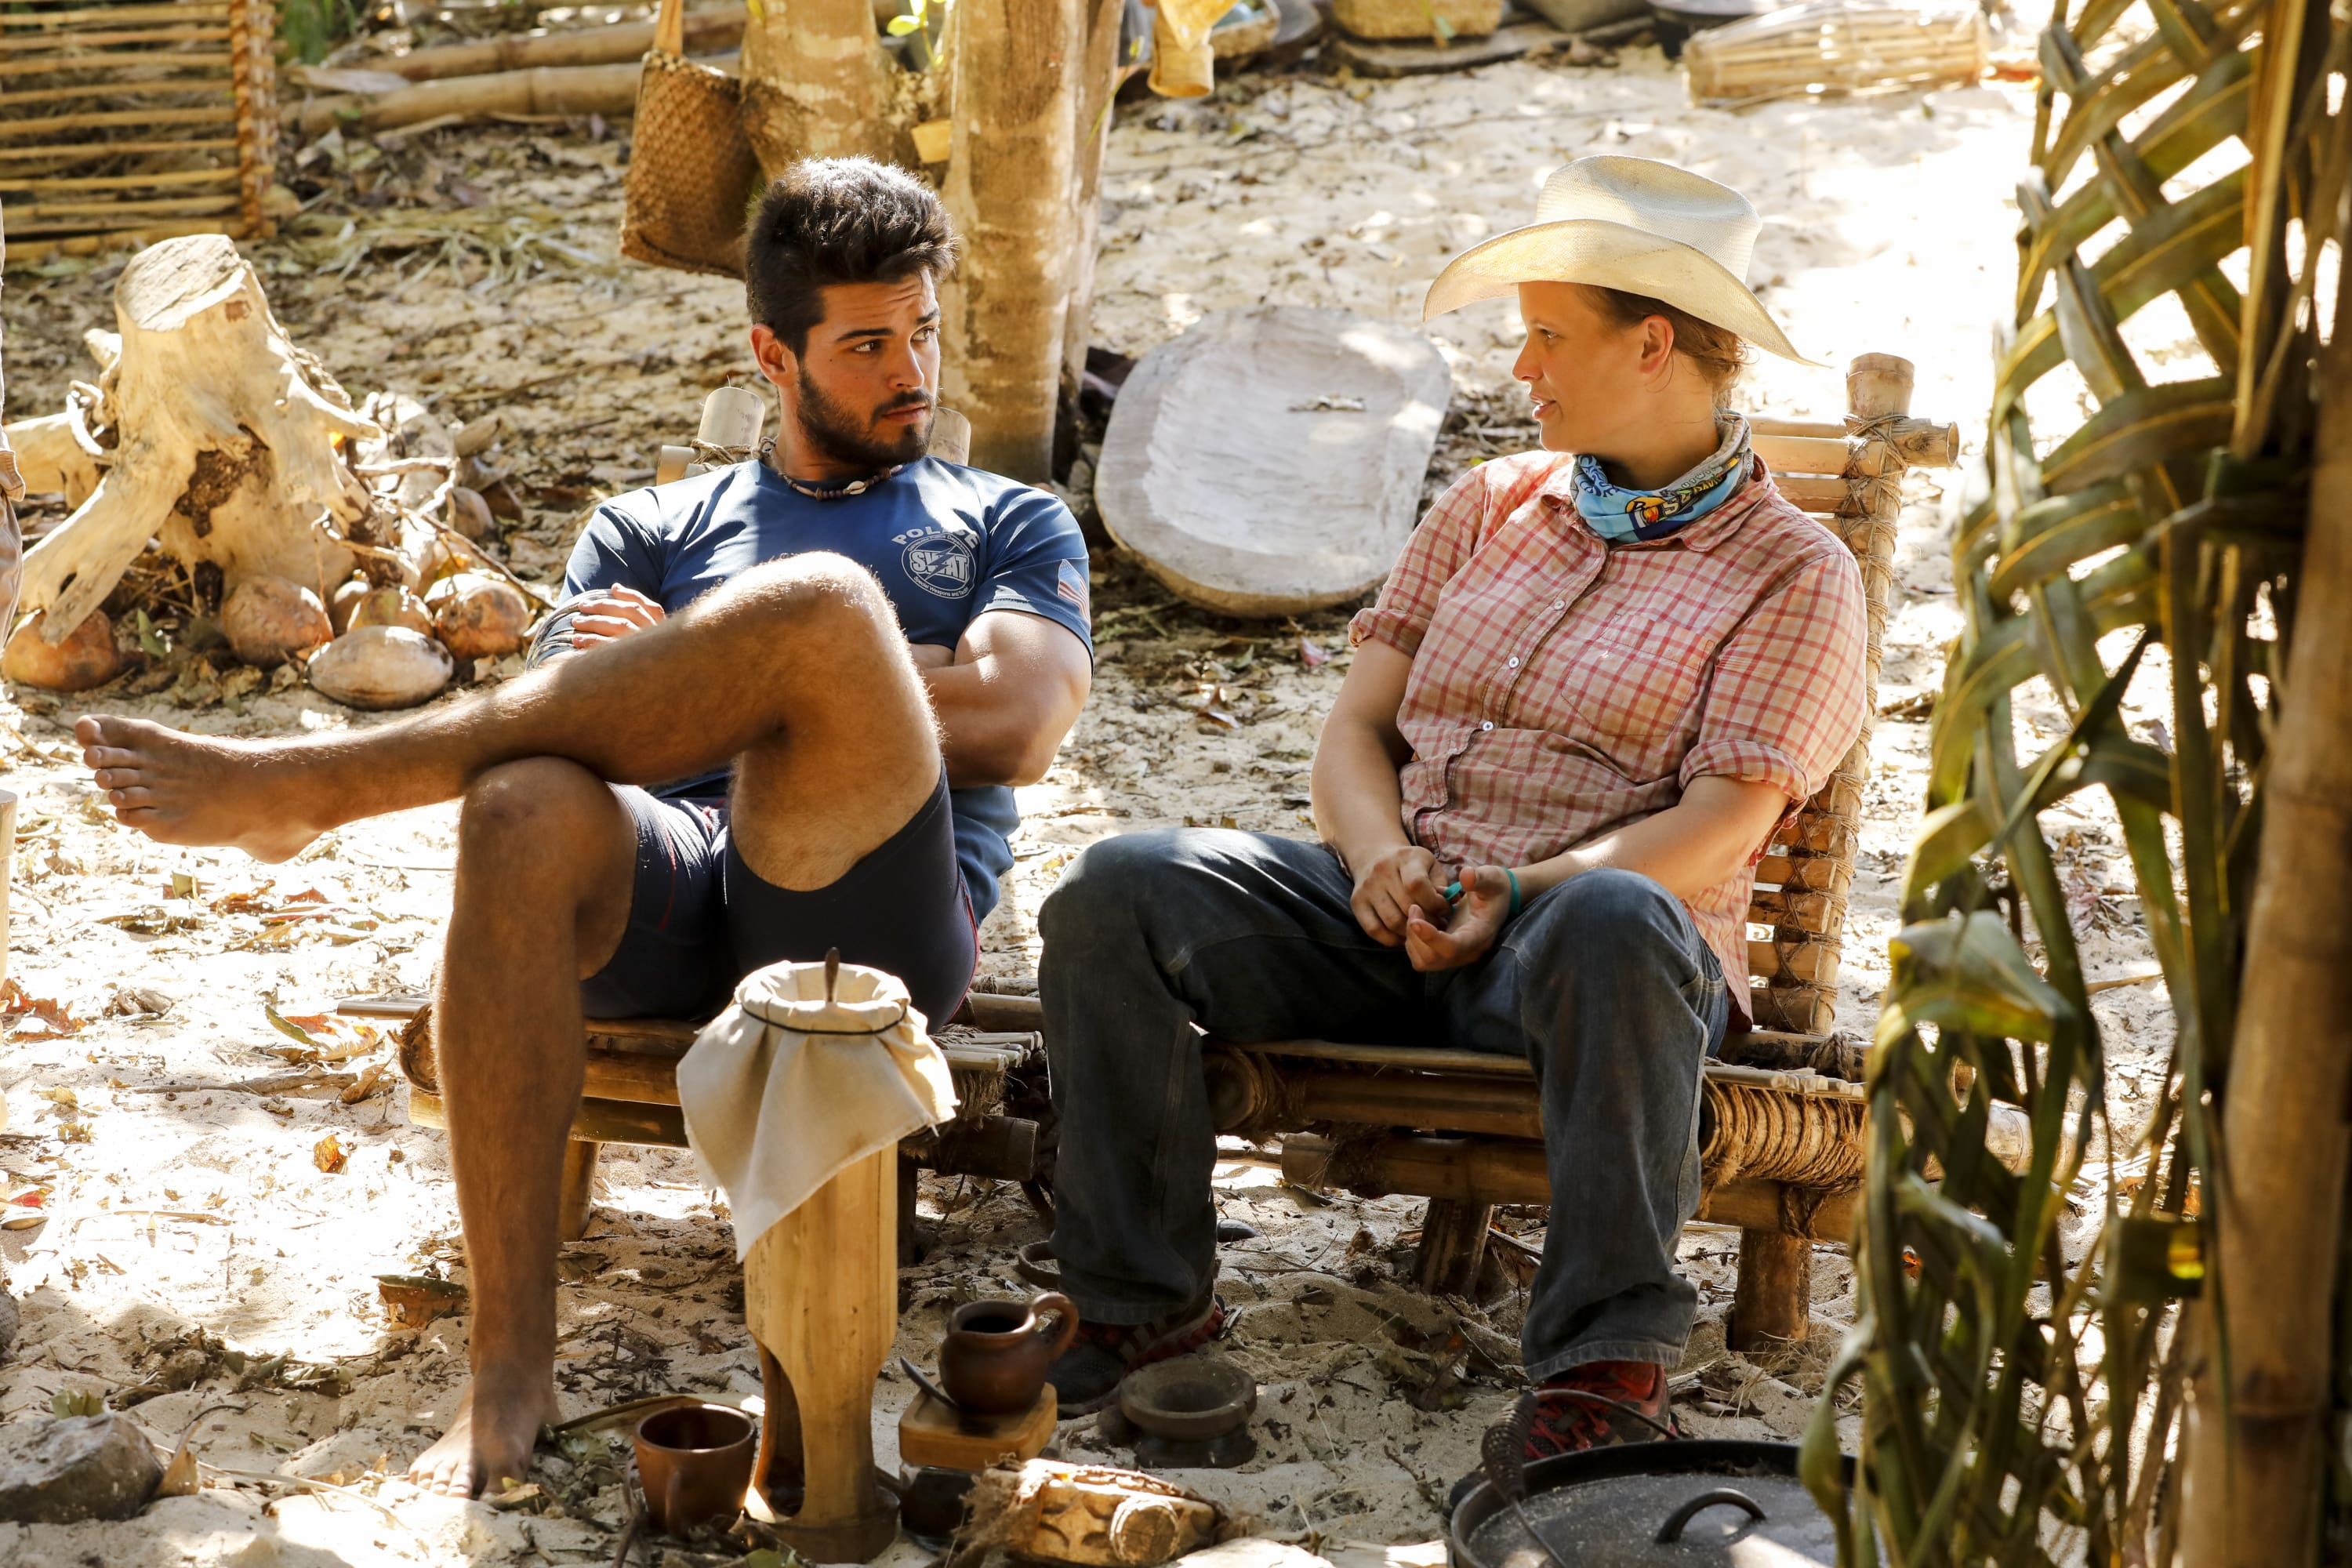 Dan Rengering and Elizabeth Olson on Survivor: David vs. Goliath